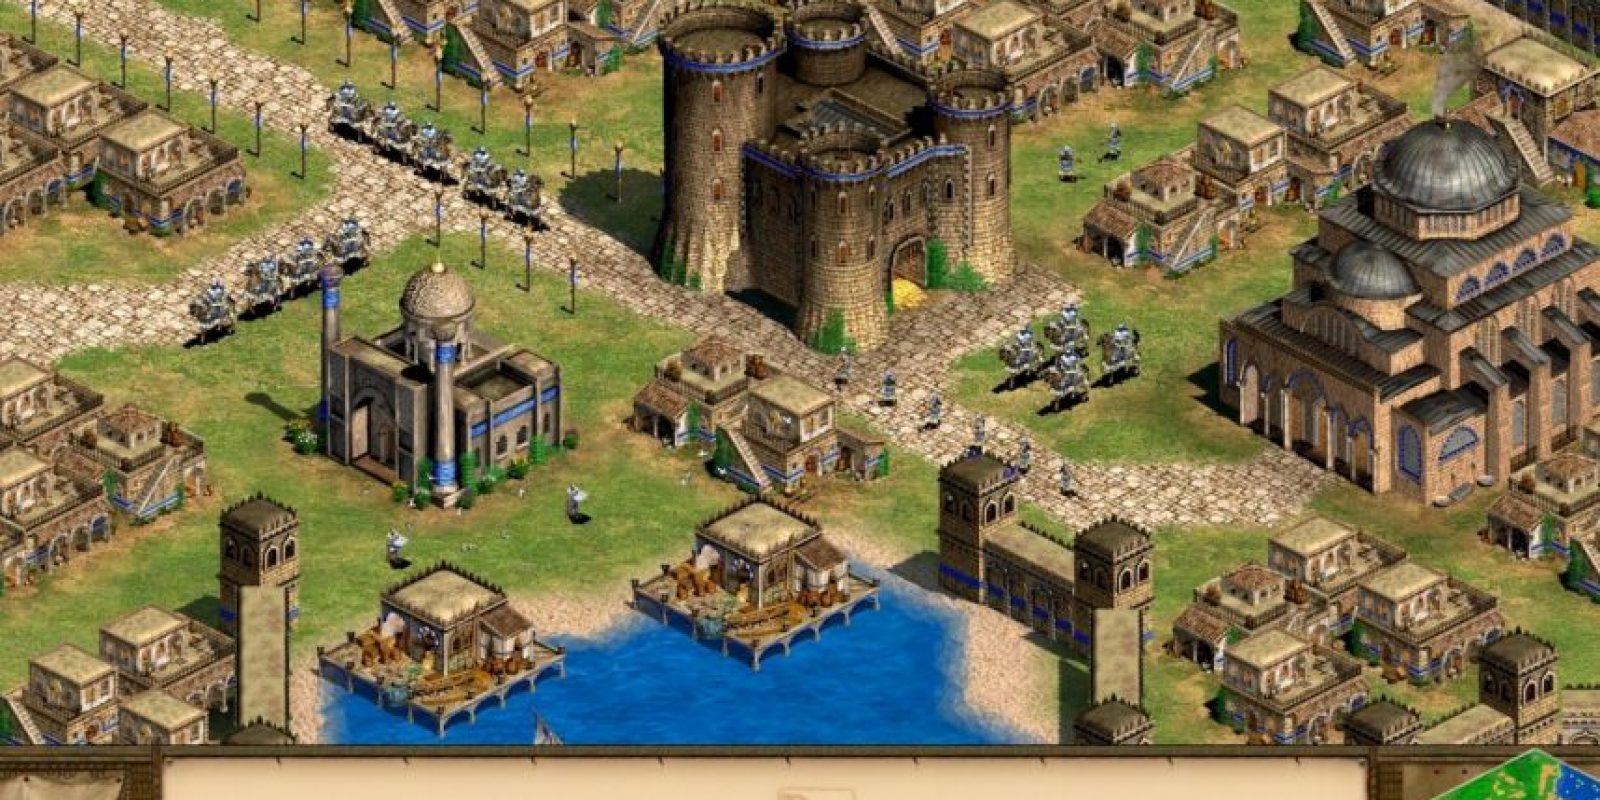 3- Age of Empires. Foto: Vía Tumblr.com